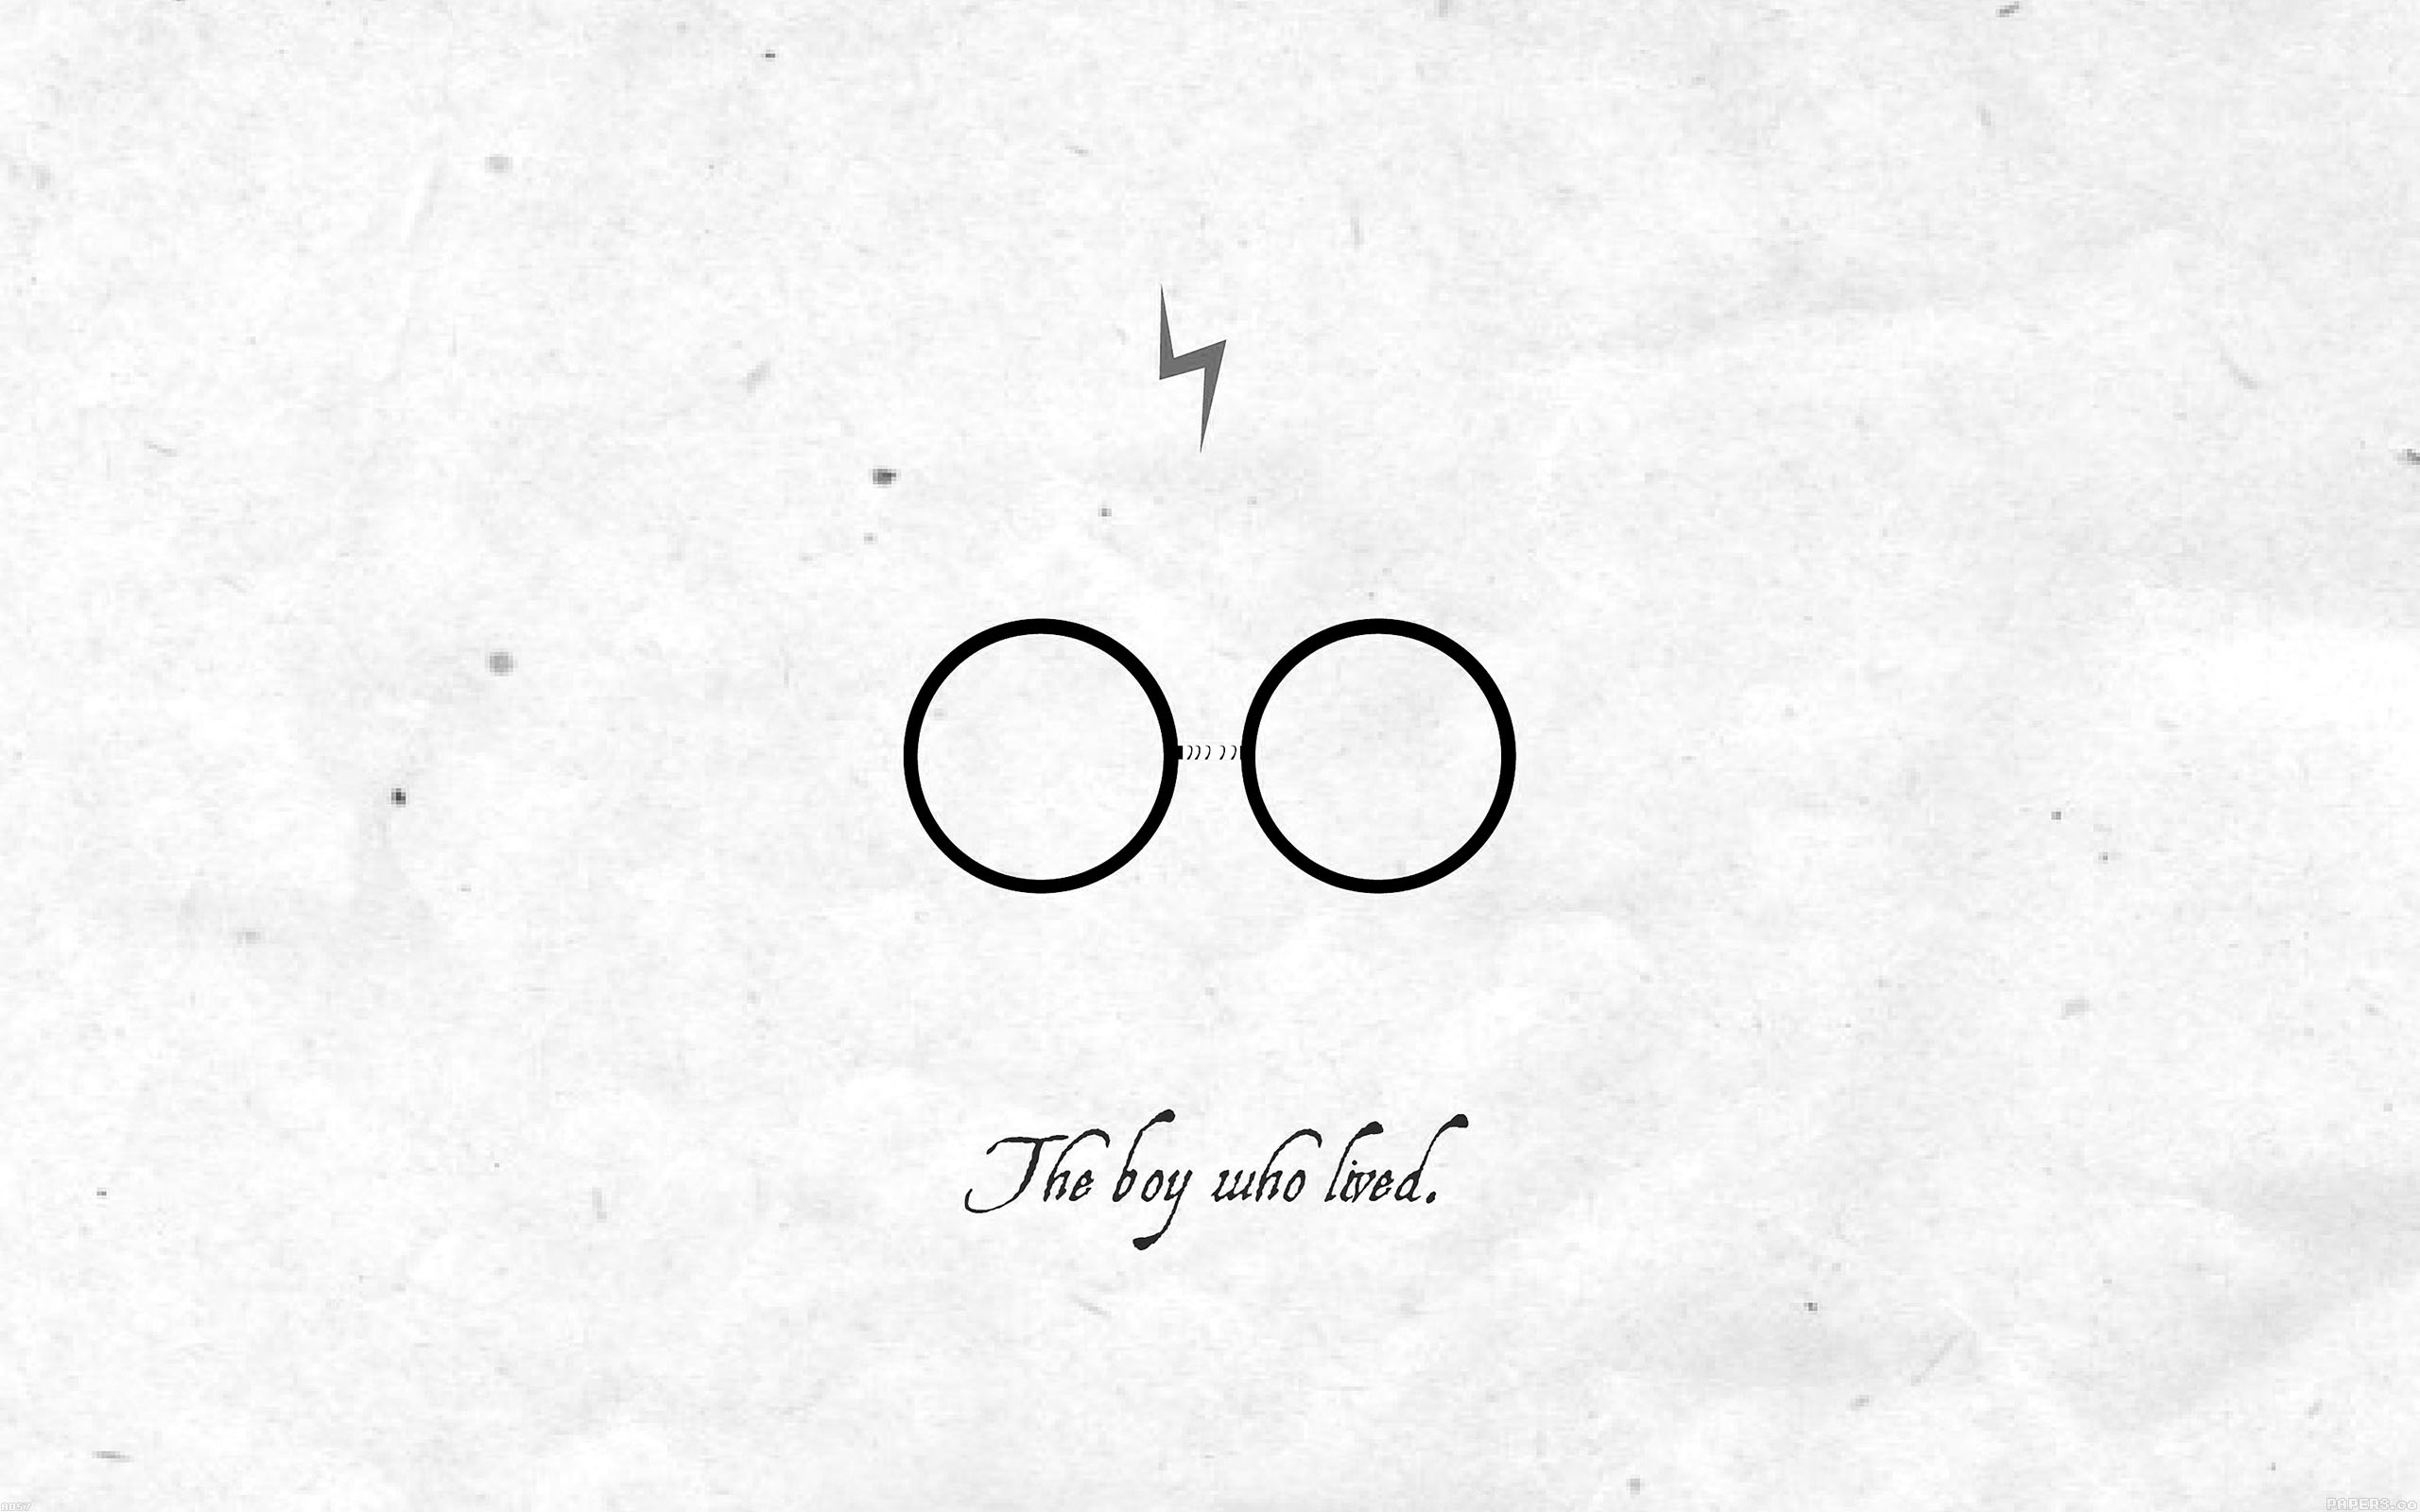 ad57-harry-potter-dark-quote-film - Papers.co